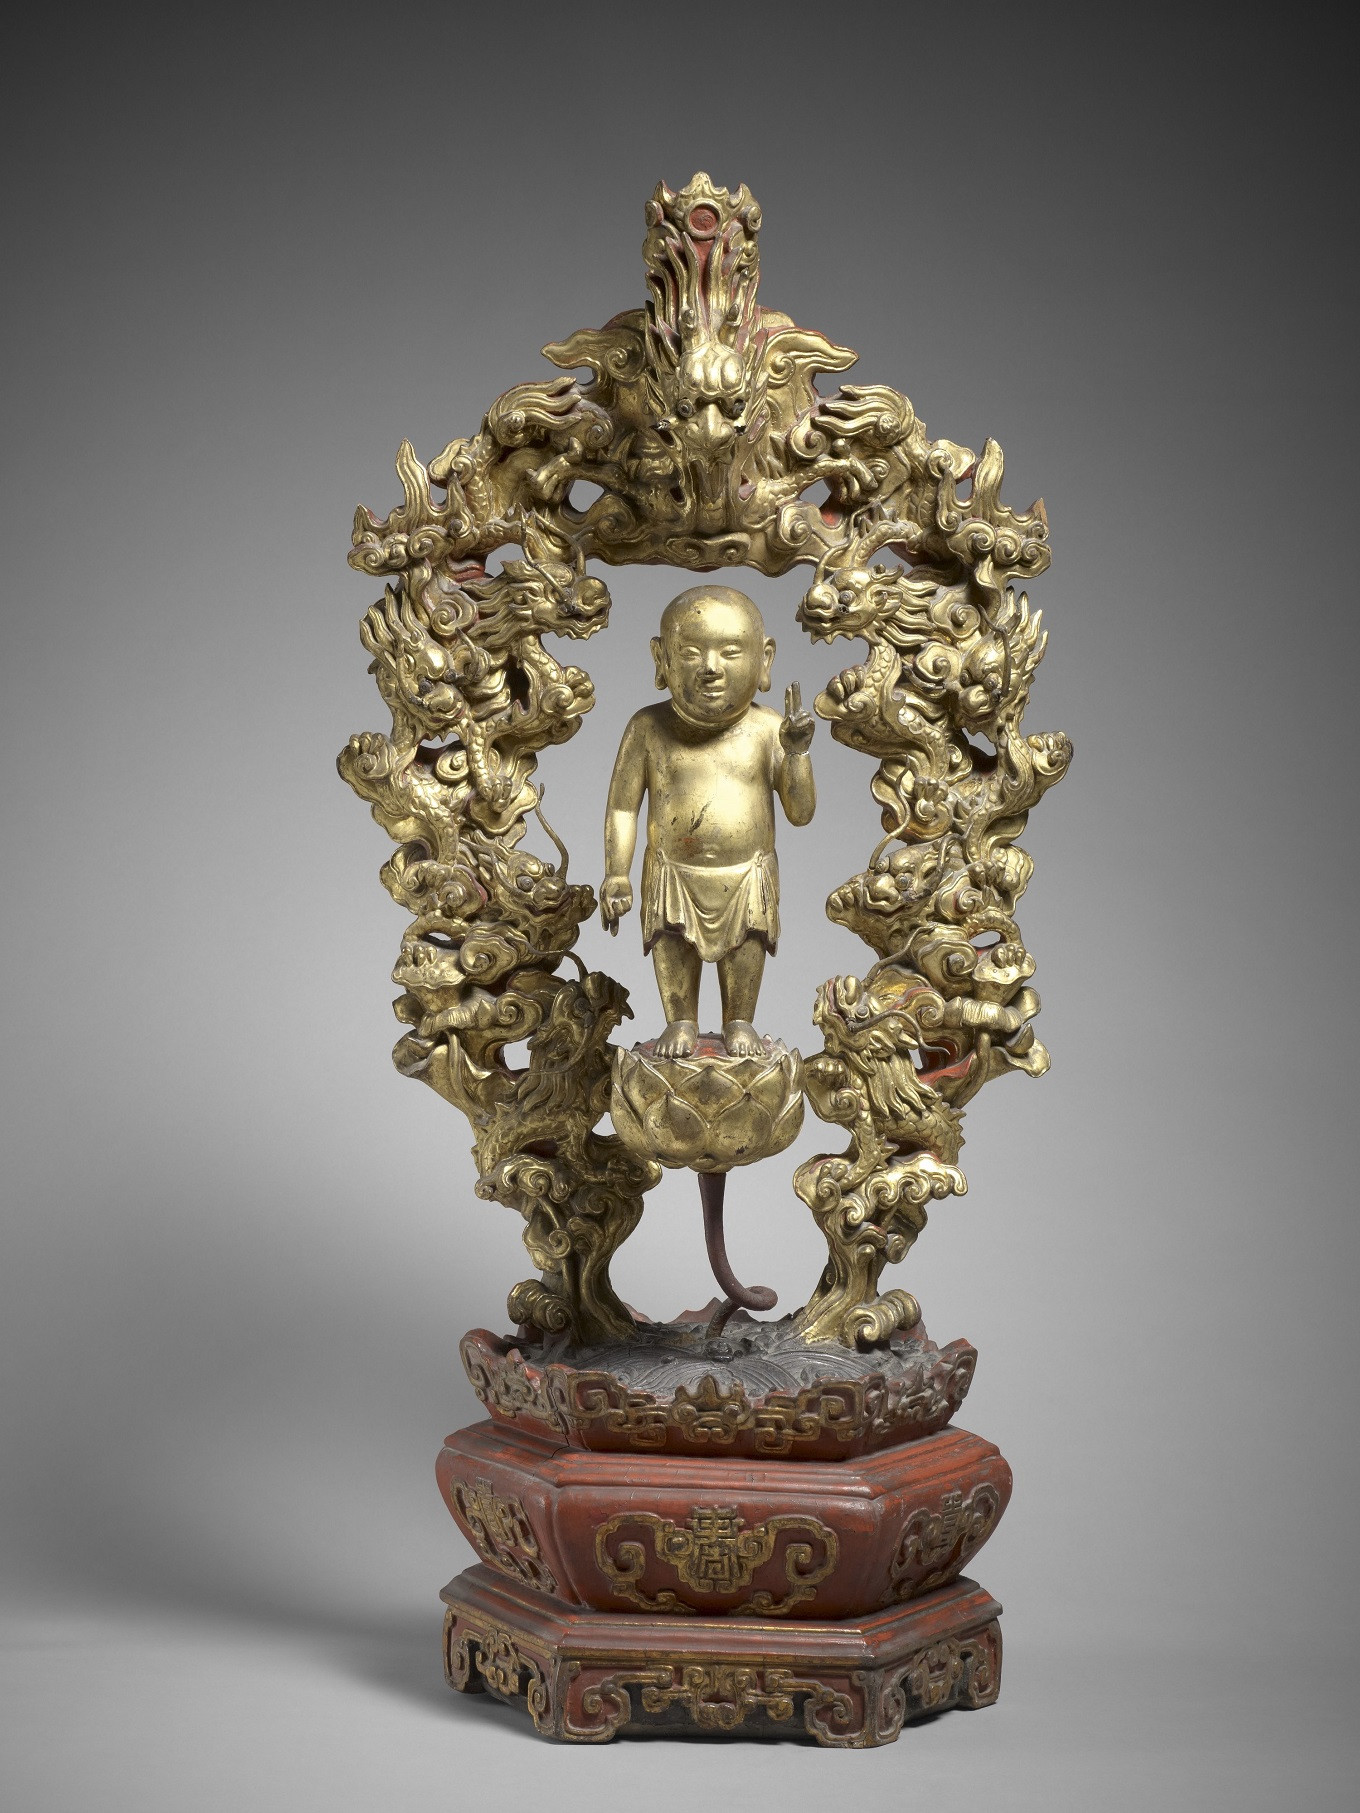 This piece – Siddharta surrounded by nine dragons, Vietnam, Lë Period, end of the 18th century, lacquered and gilded wood, height 105 cm – was donated by Gustave Dumoutier in 1889.